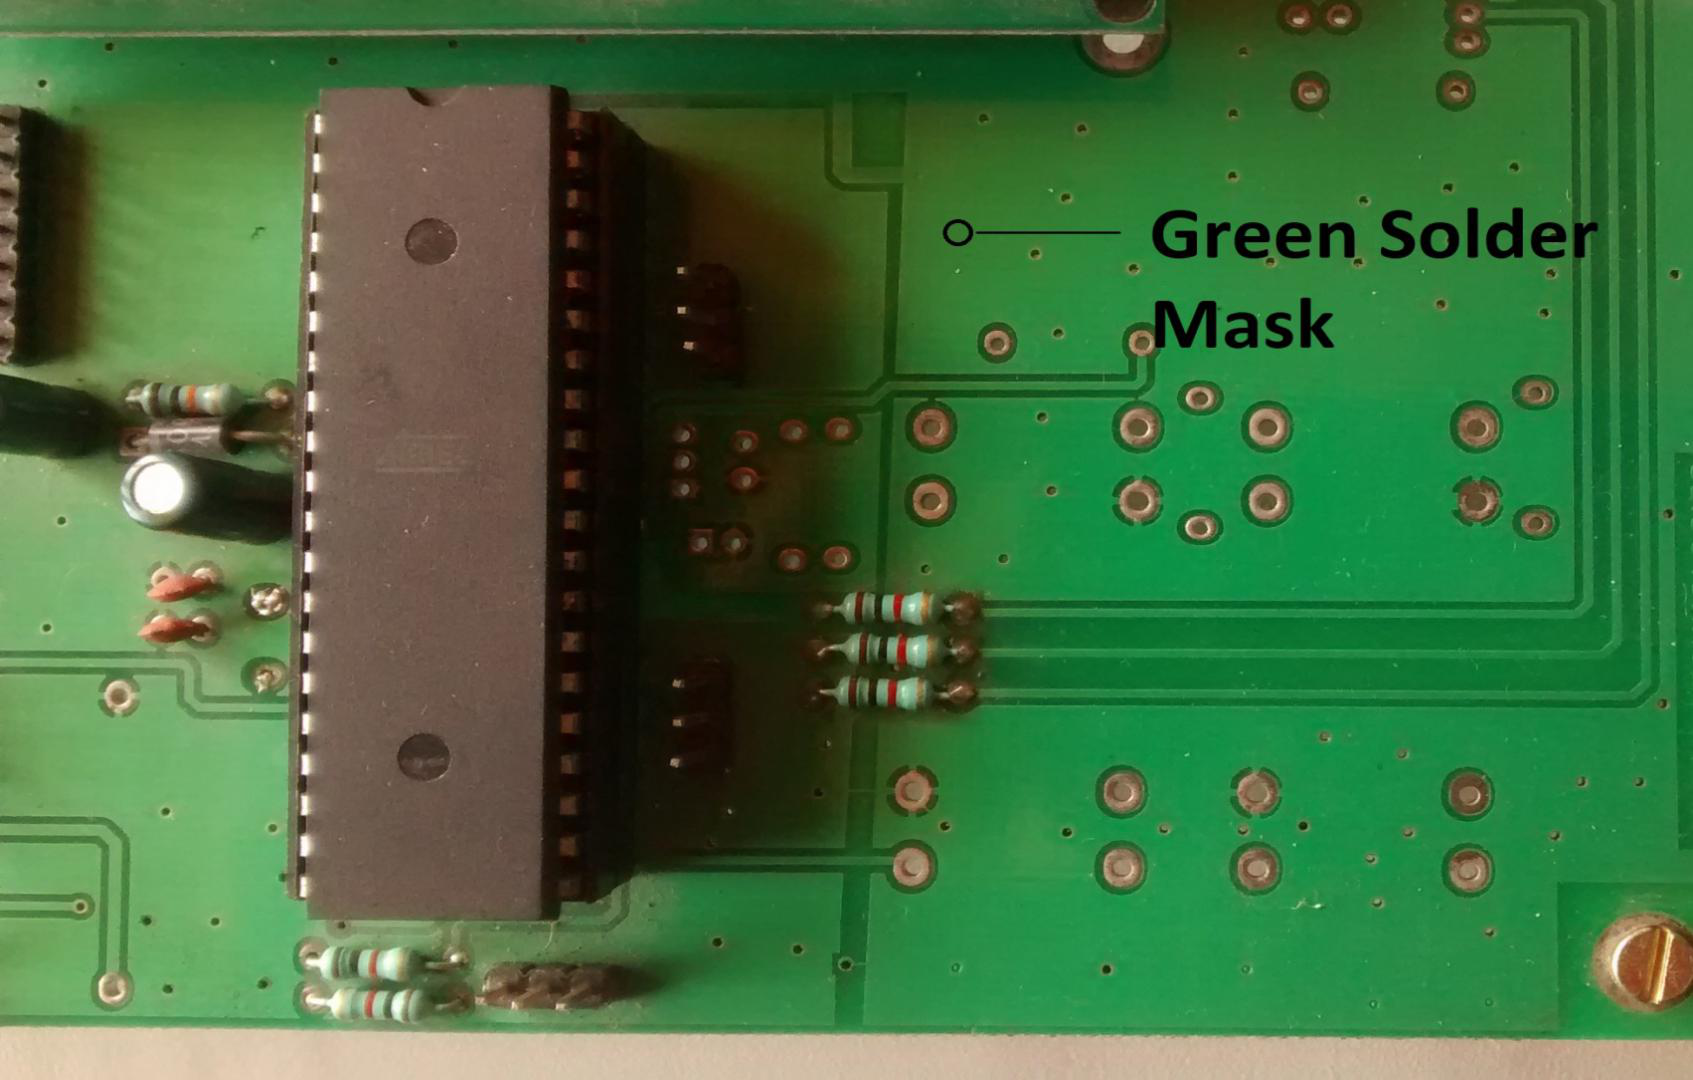 How Green Pcb Board Has Become A Standard In Manufacturing Custom Printed Circuit Assembly Services Solder Mask Is Actually Thin Polymer Layer Covering The Surface To Prevent Oxidation And Bridges